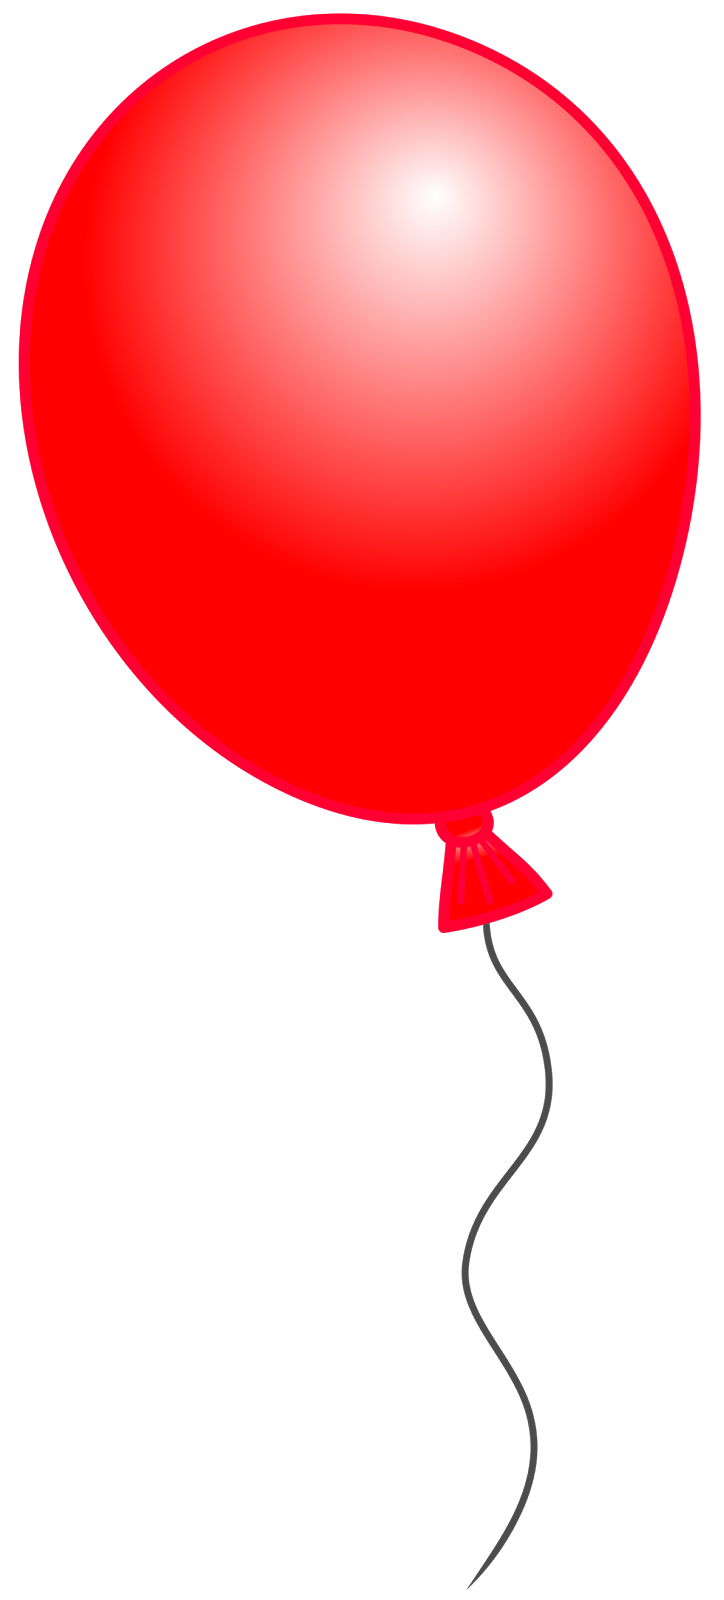 red and green balloon clipart clipart kid